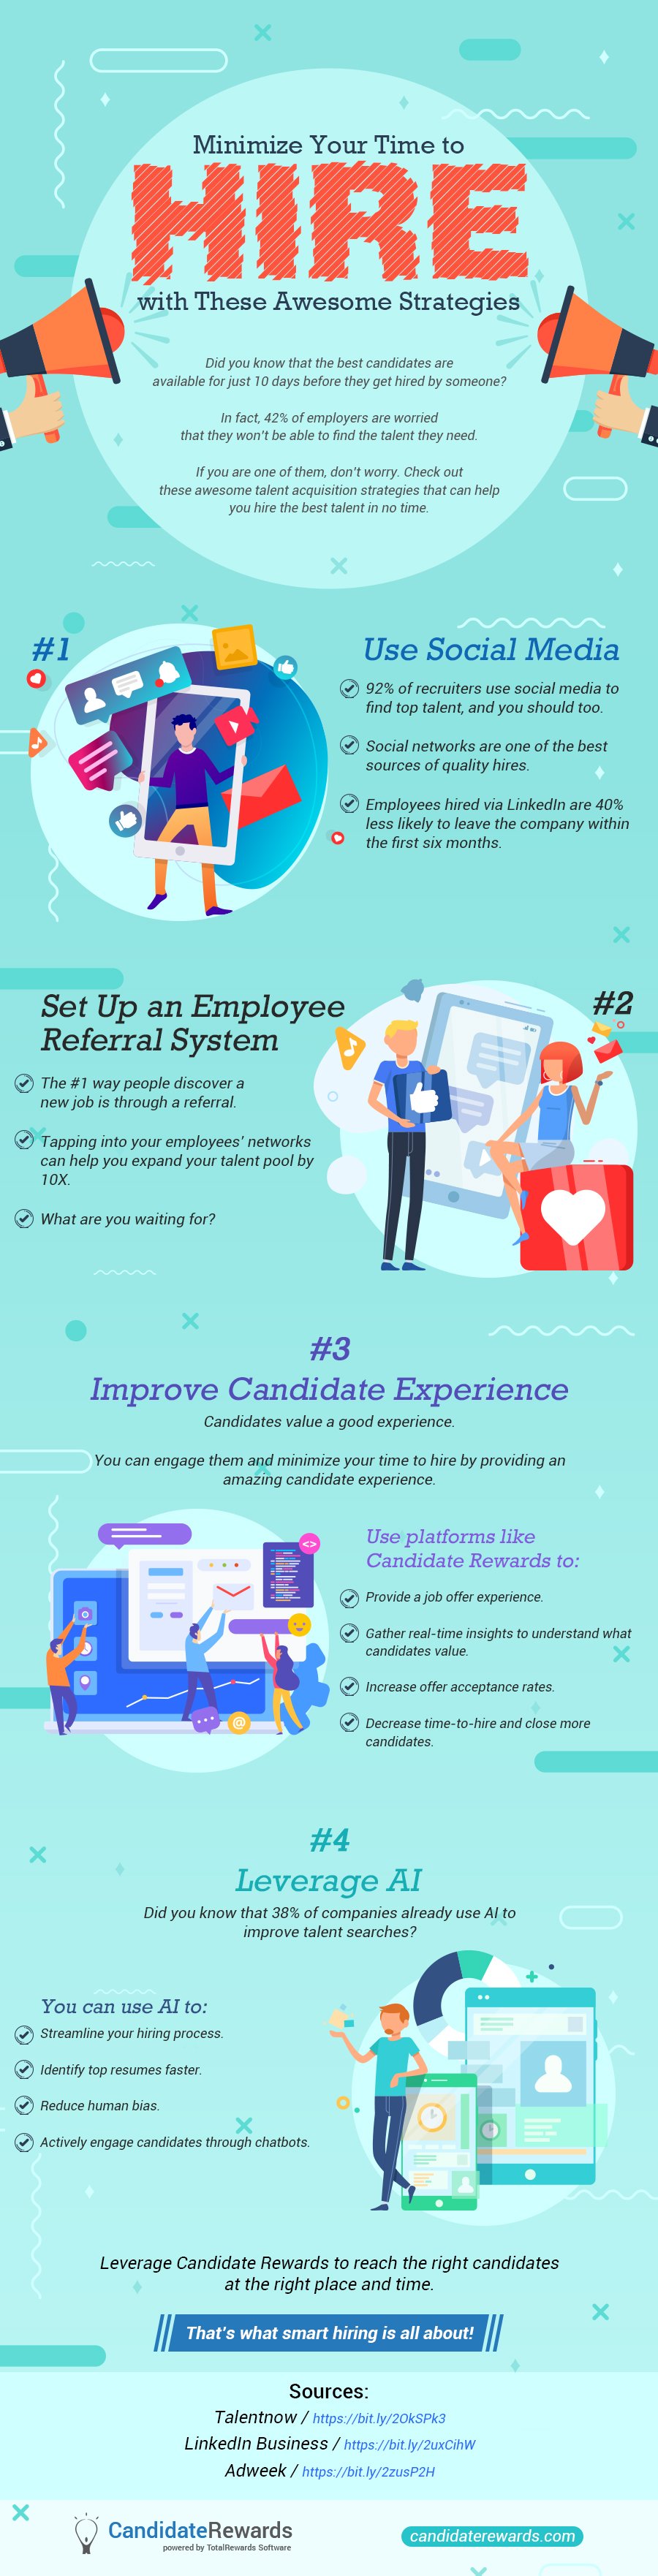 Minimize Your Time to Hire with These Awesome Strategies (Infographic)